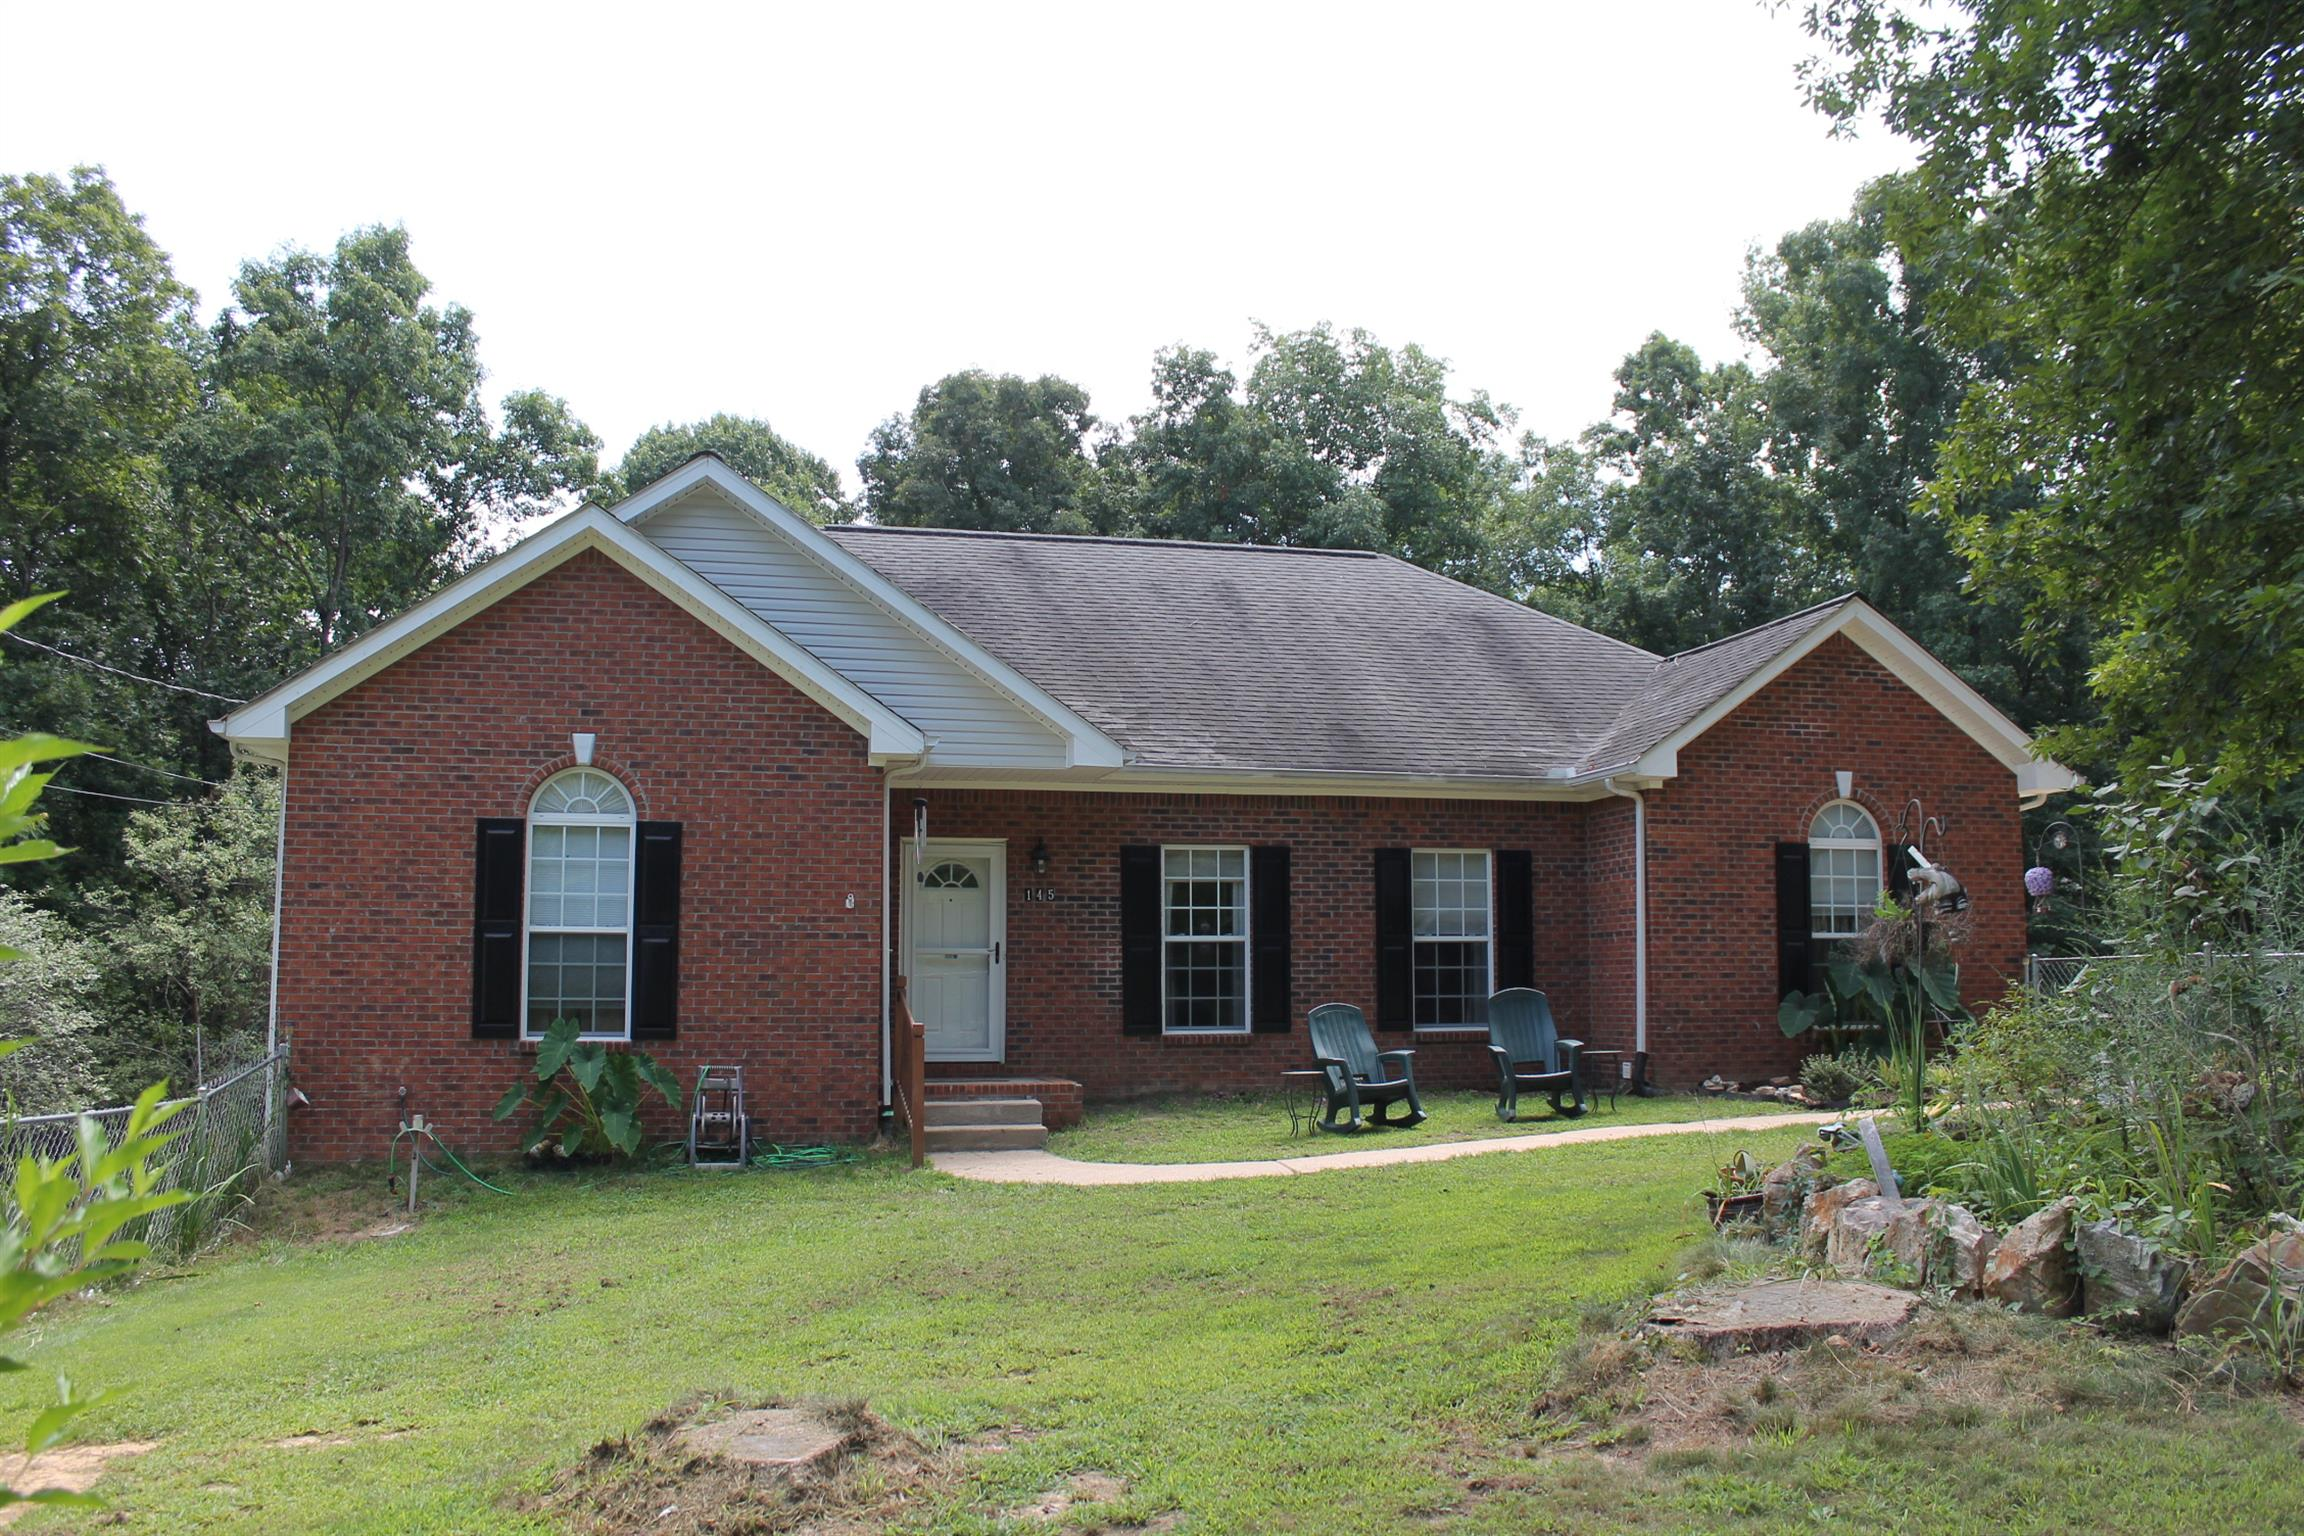 145 Overlook Rd, Dover, TN 37058 - Dover, TN real estate listing